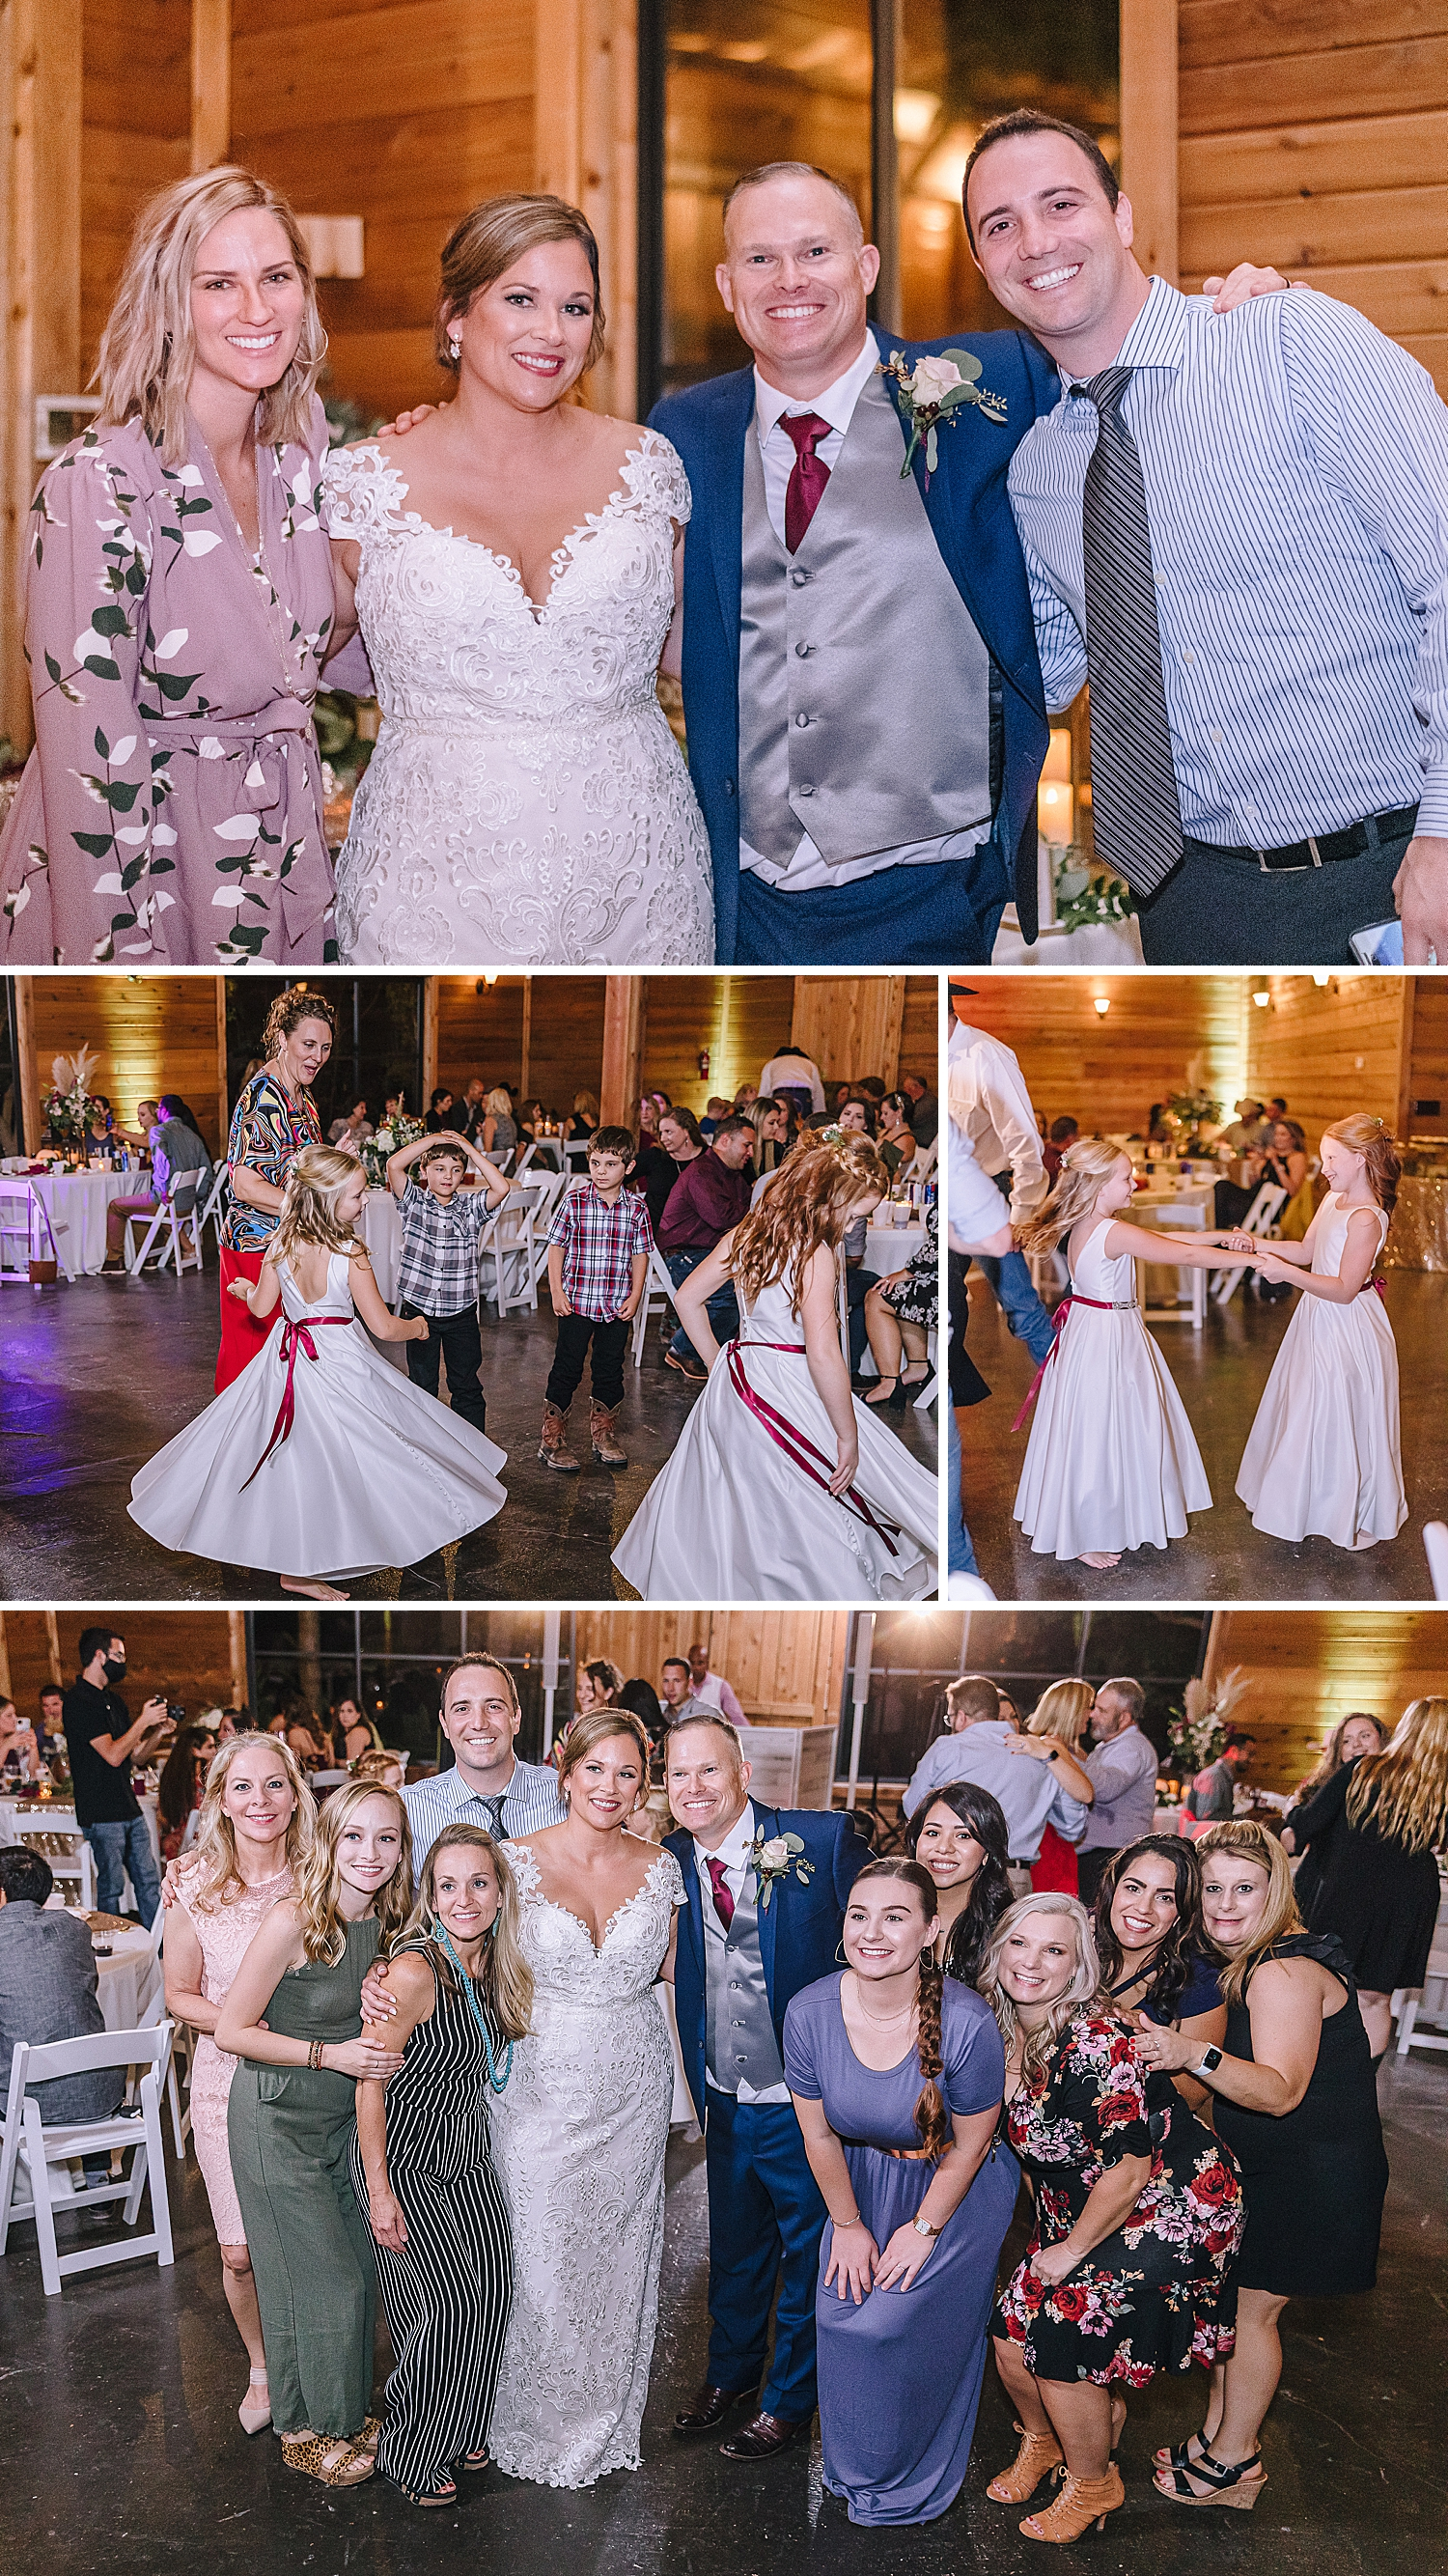 Geronimo-Oaks-Wedding-Venue-Seguin-Texas-Elegant-Navy-Burgundy-Wedding-Carly-Barton-Photography_0091.jpg